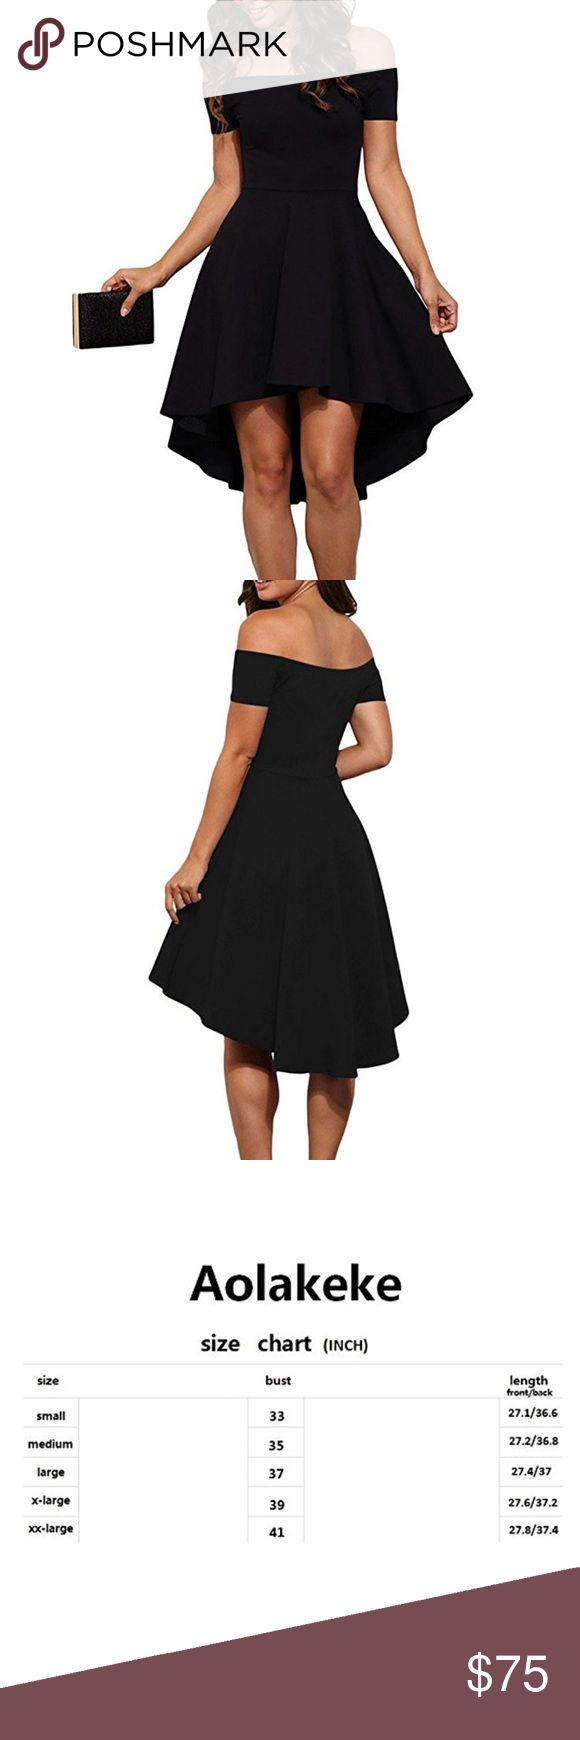 👓OPEN TO OFFERS👓 Material : 95% Polyester + 5% Spandex Features : Off Shoulder Neckline With Short Sleeve ; Unique High Low Hem ; Super Cute Skater Dress ; Pull On closure Occasion : Party / Club / Date Soft and comfortable ; Sexy and charming ; casual and stylish Note : Wash it by hand in 30-degree water ; hang to dry in shade ; prohibit bleaching .   Item # 18 Dresses